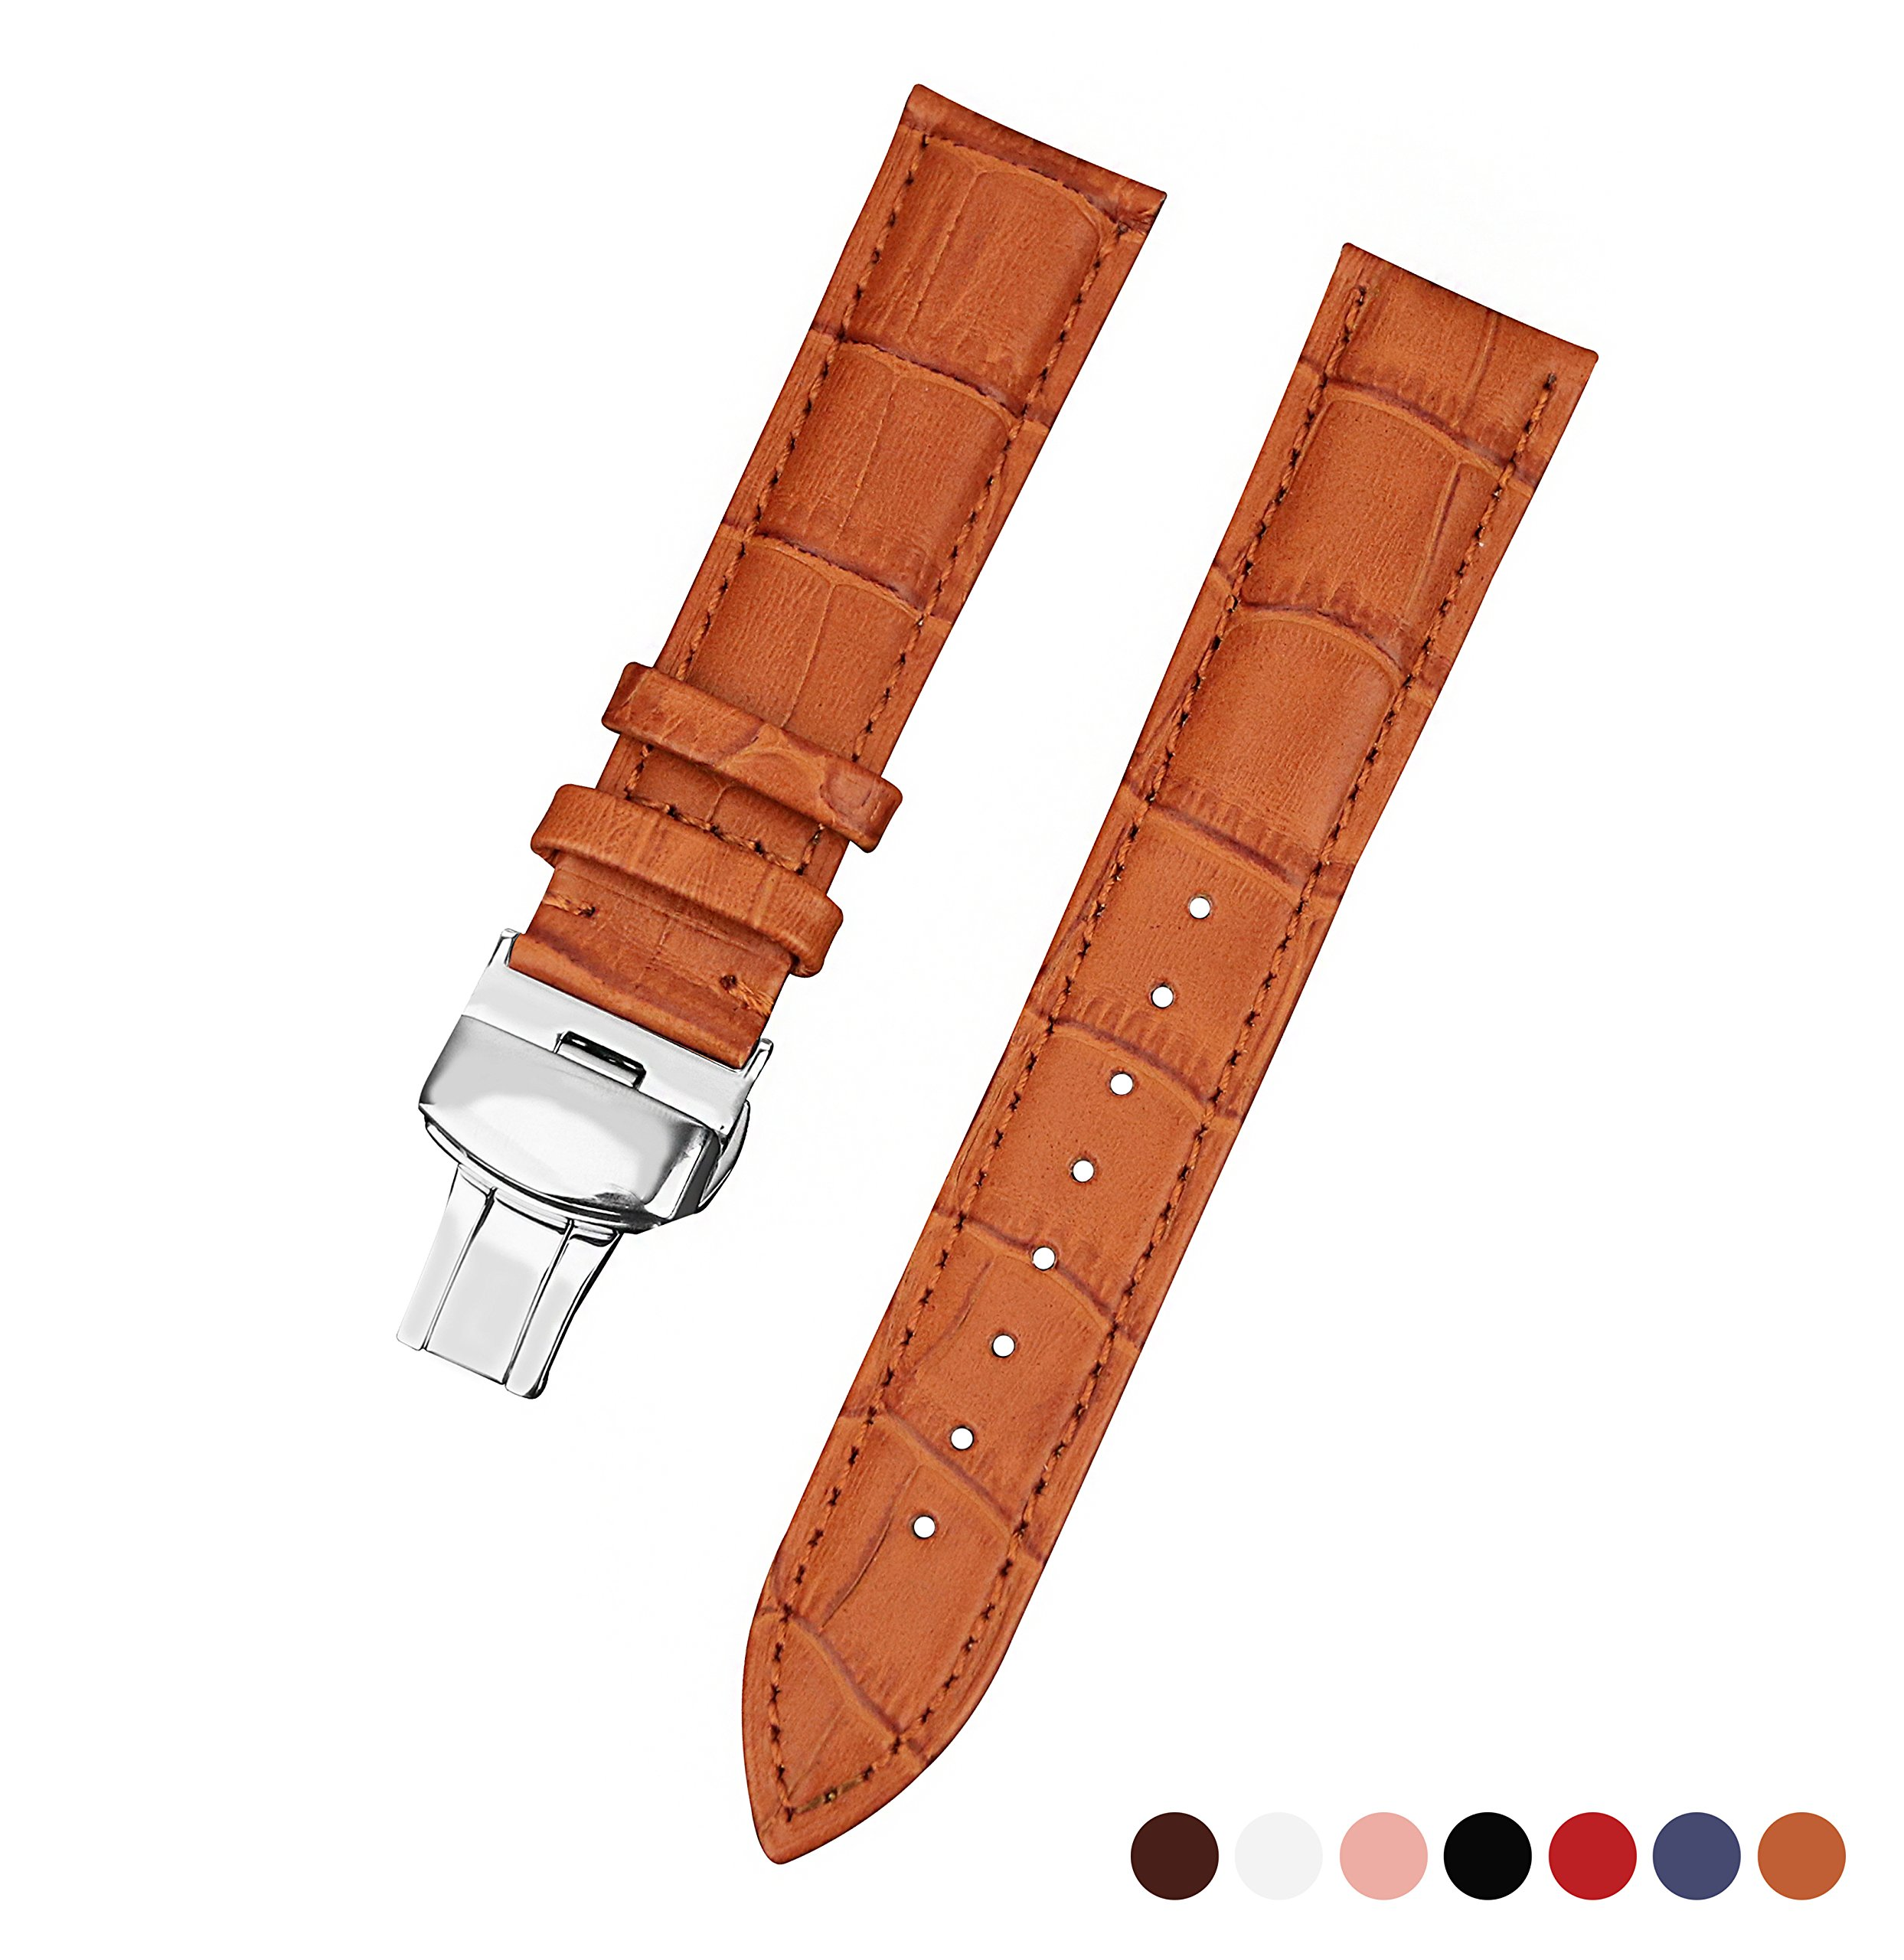 16mm Light Brown Genuine Leather Watch Band Watch Strap Watch Wristband Butterfly Clasp with Spring Bar